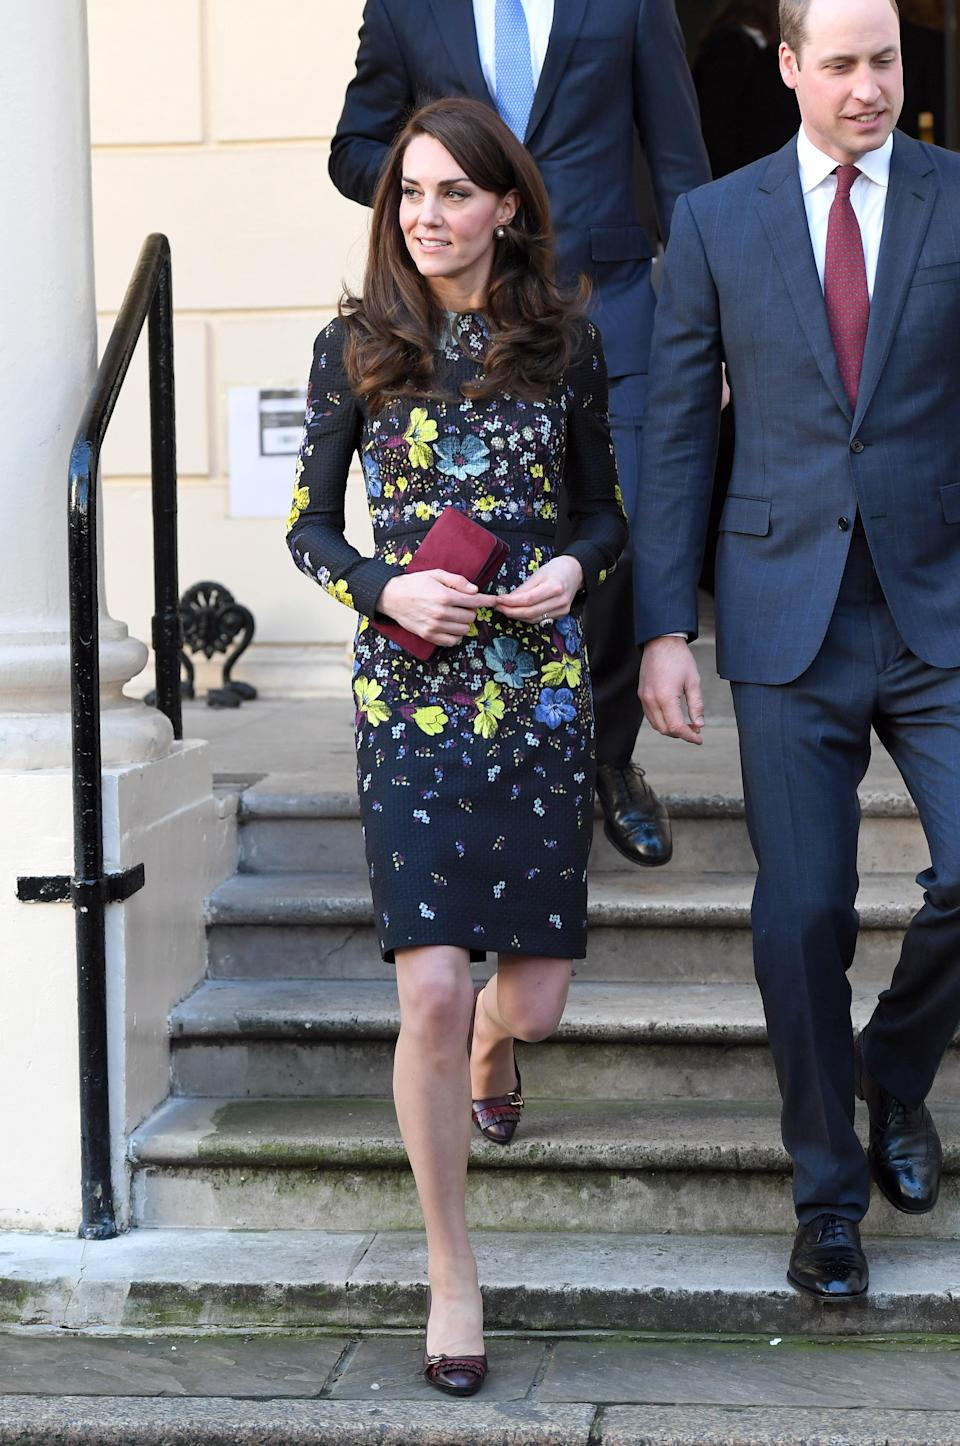 <p><strong>When:</strong> January 17, 2017 <strong>Where:</strong> A briefing for the Heads Together campaign in London <strong>Wearing:</strong> Erdem Evita Dress and Mulberry clutch <strong>Get the Look:</strong> ASOS Maya Petite Floral 3D Embellished Midi Dress, $151; <span>asos.com</span> Erdem Reiko Haso Night Ponte Jersey Dress, $833; <span>fwrd.com </span>Mulberry Wallet Clutch, $725; <span>mulberry.com </span>Salvatore Ferragamo Elga Pumps, $310; <span>farfetch.com </span>Chloé Darcey Faux Pearl Earrings, $250; <span>matchesfashion.com</span> </p>